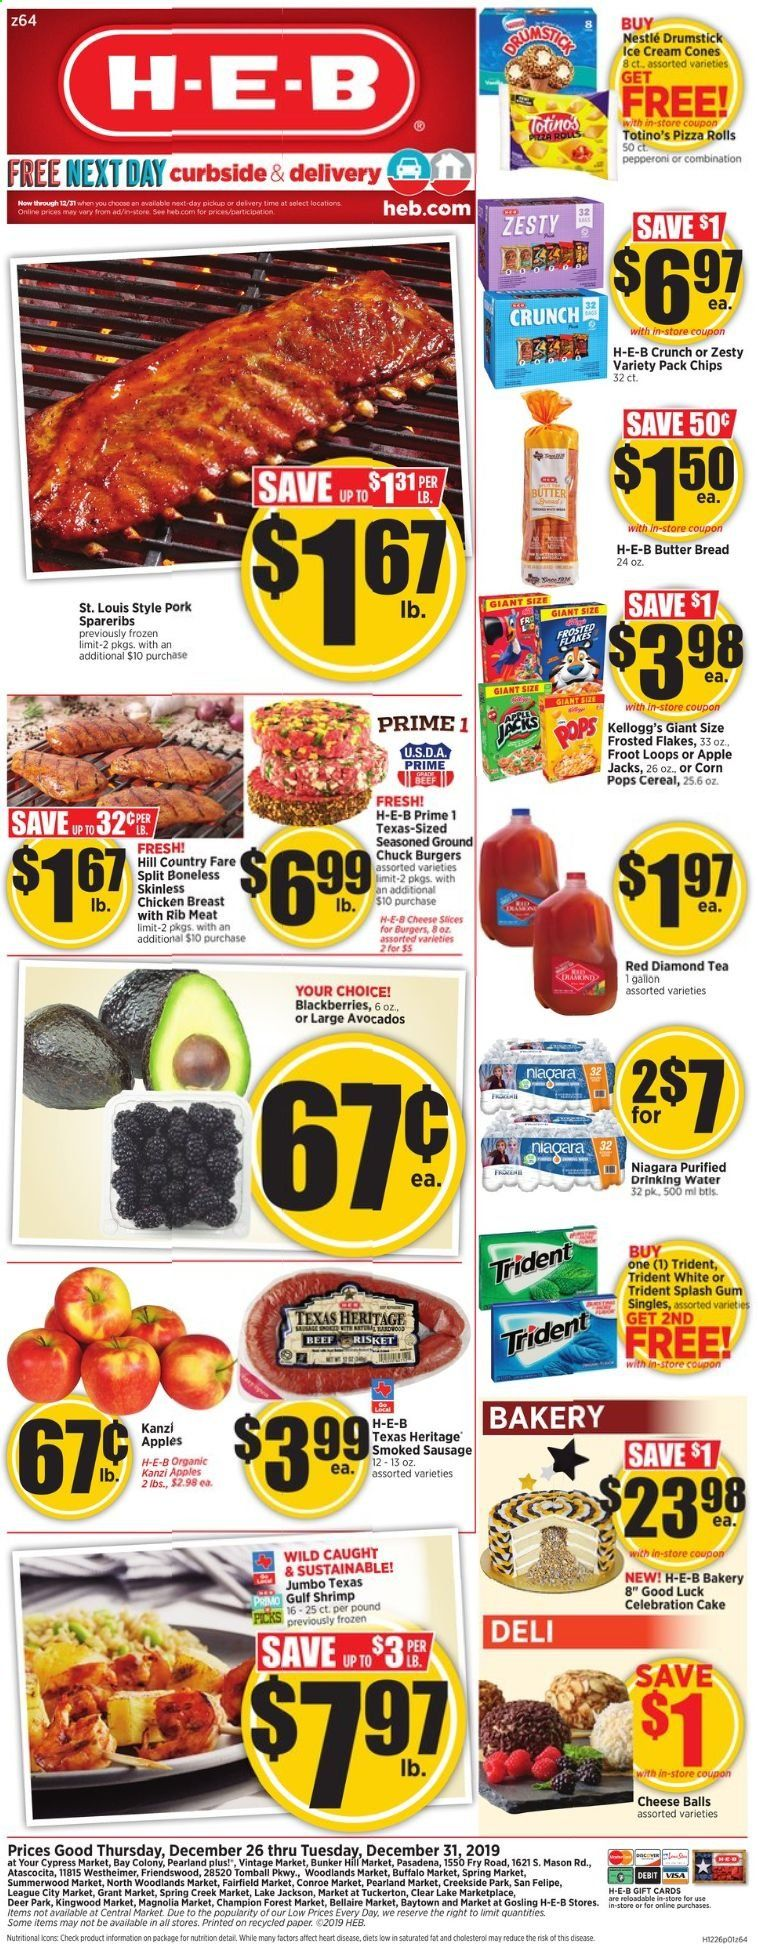 H-E-B Flyer  - 12.26.2019 - 12.31.2019. Page 1.